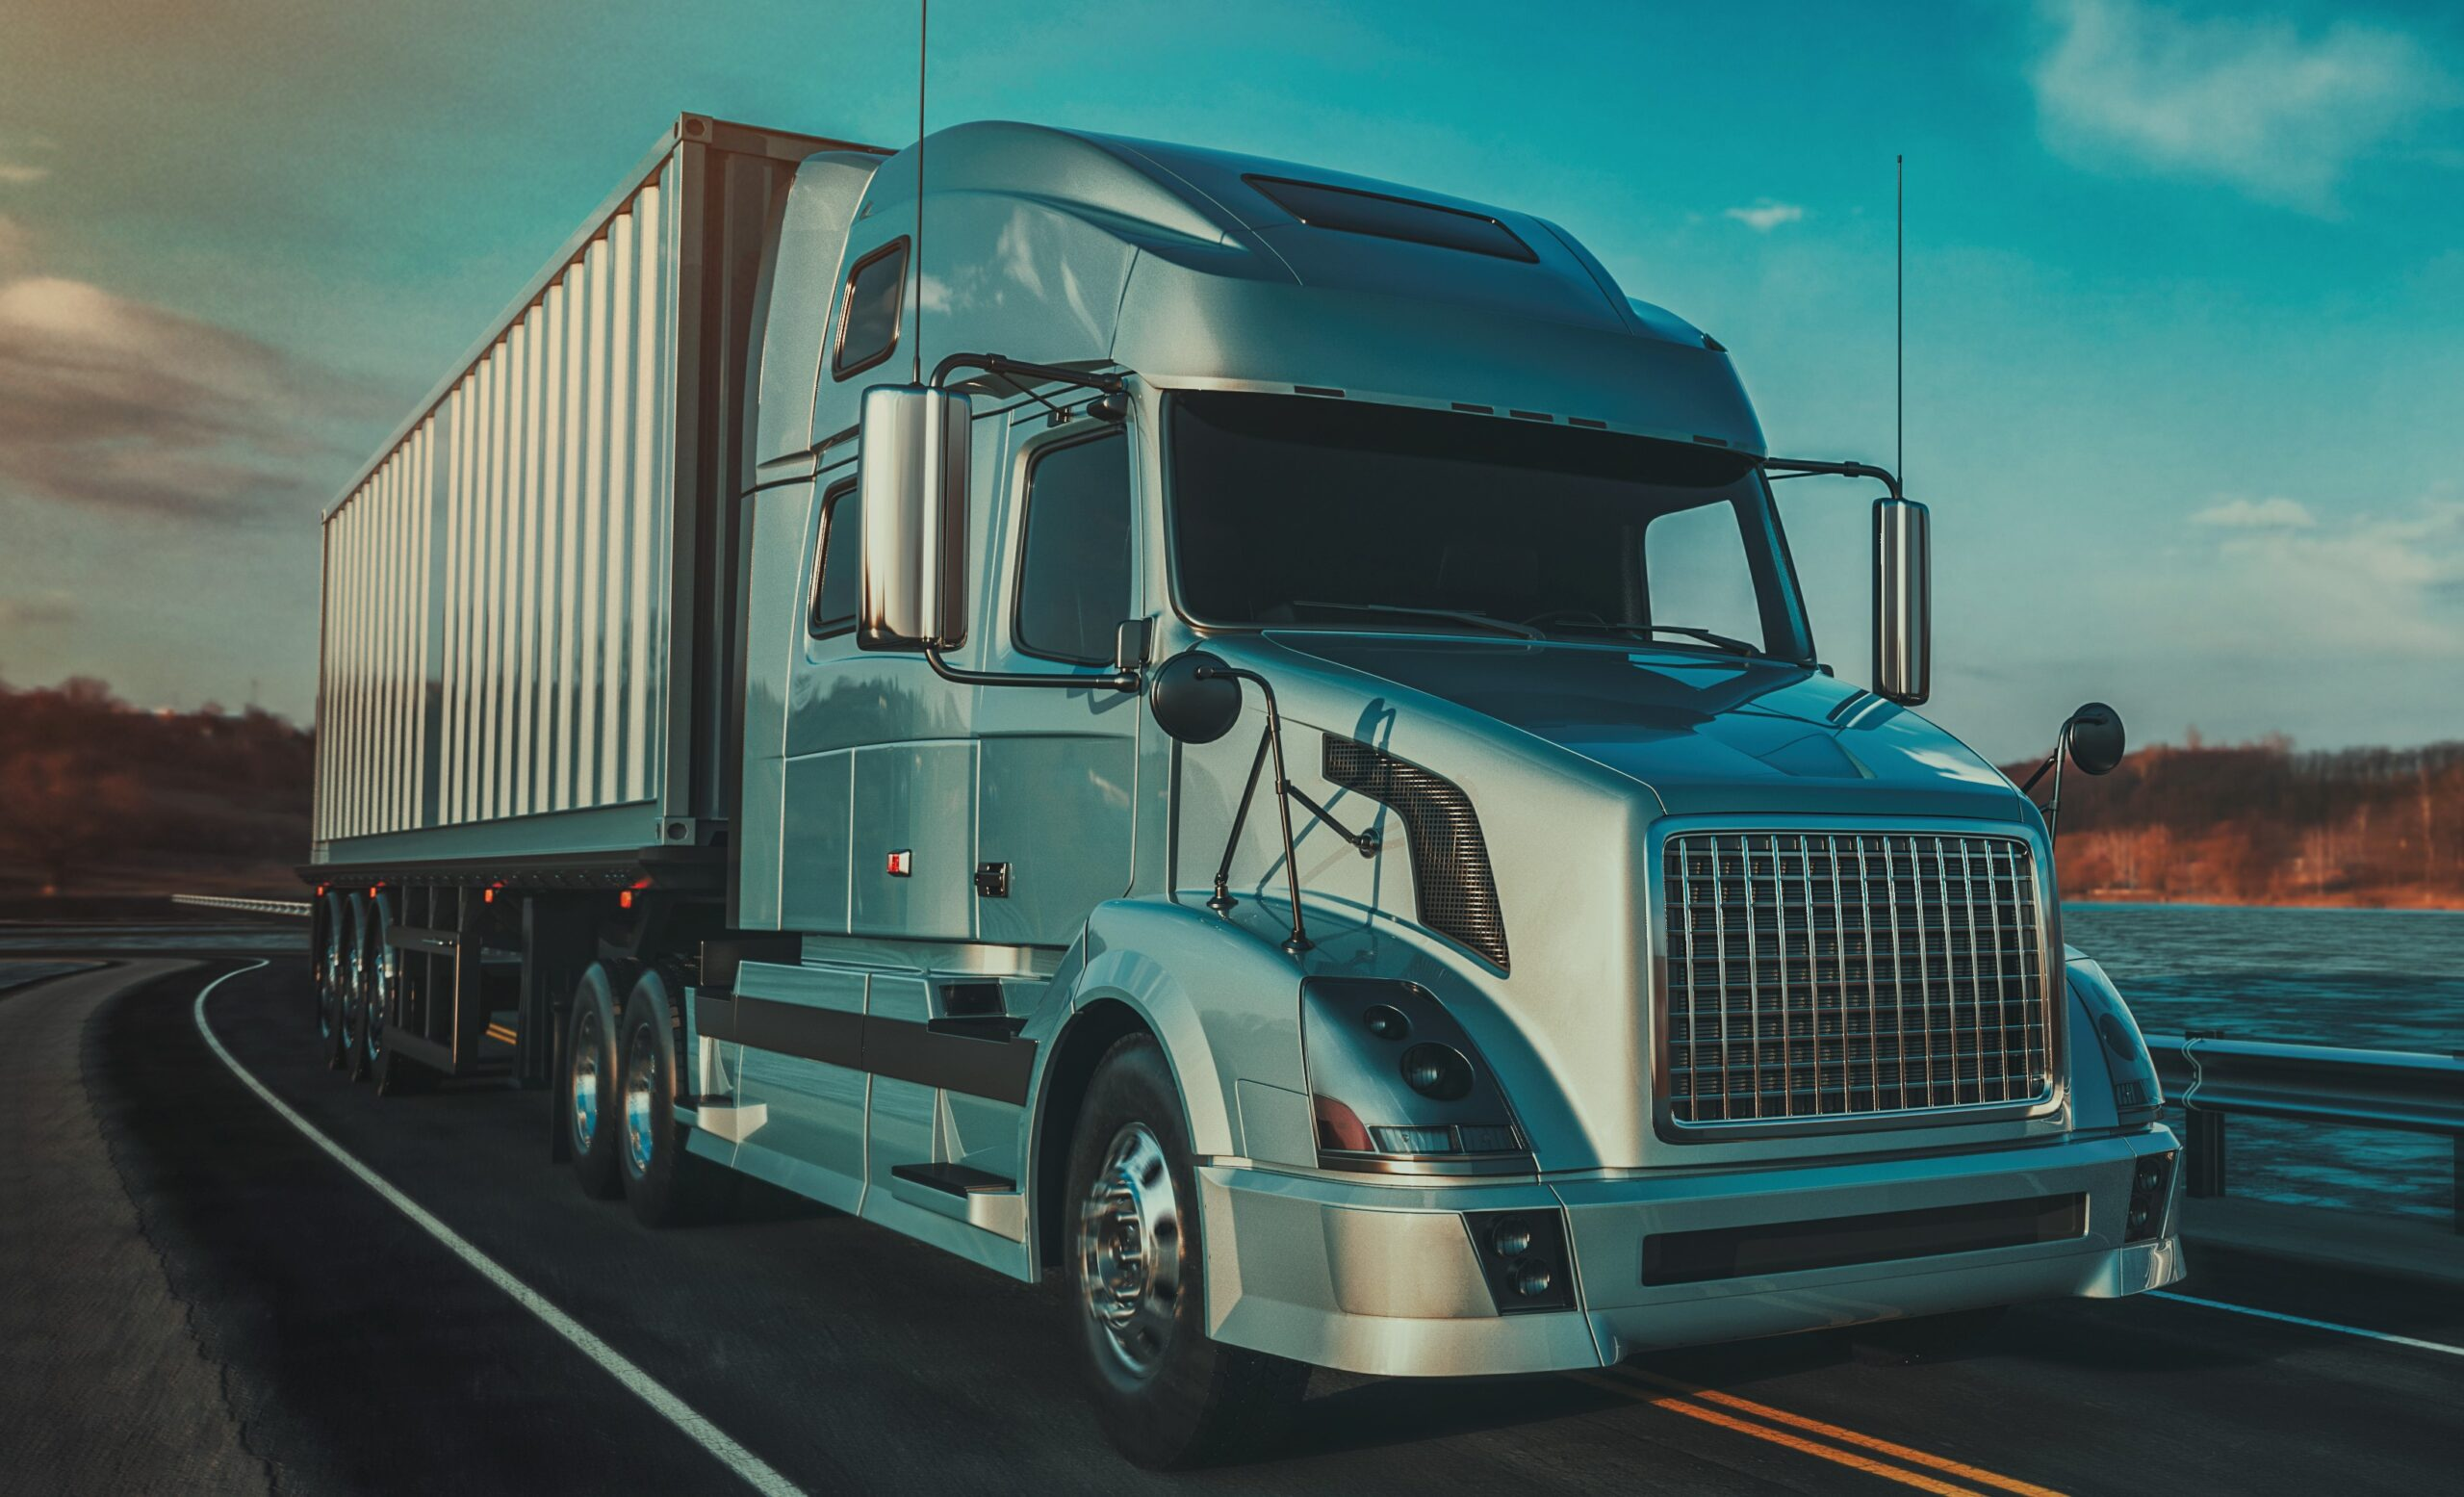 Truck Trucking miami florida insurance